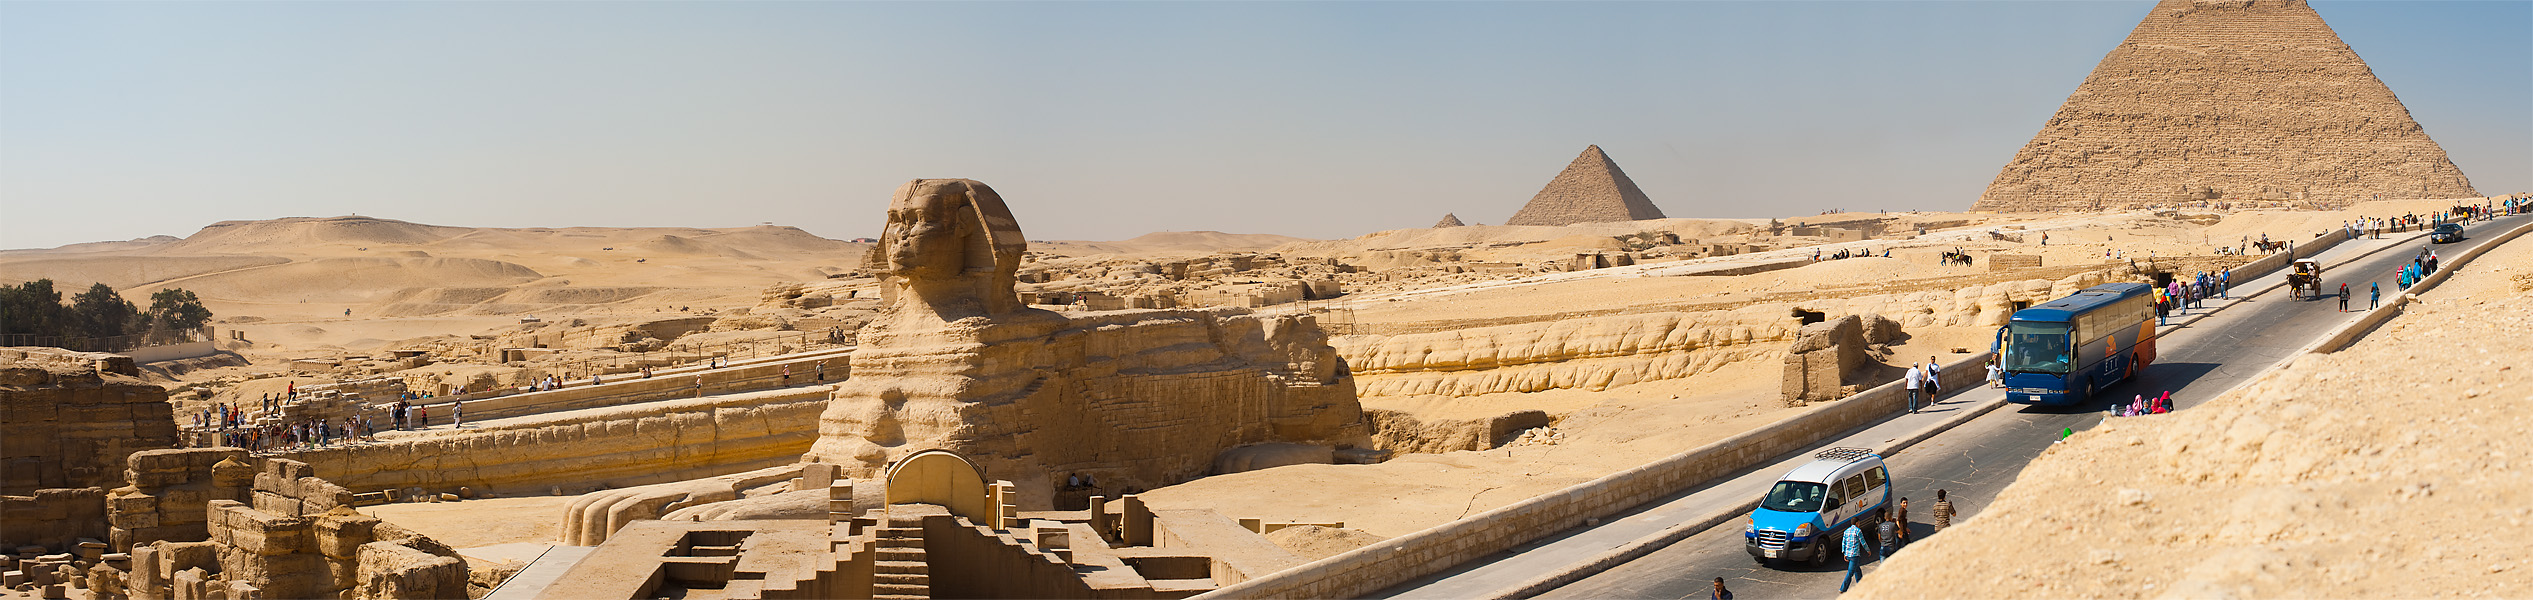 Panorama Image Sphinx Road Pyramids Desert Necropolis - Cairo, Egypt - Daily Travel Photos